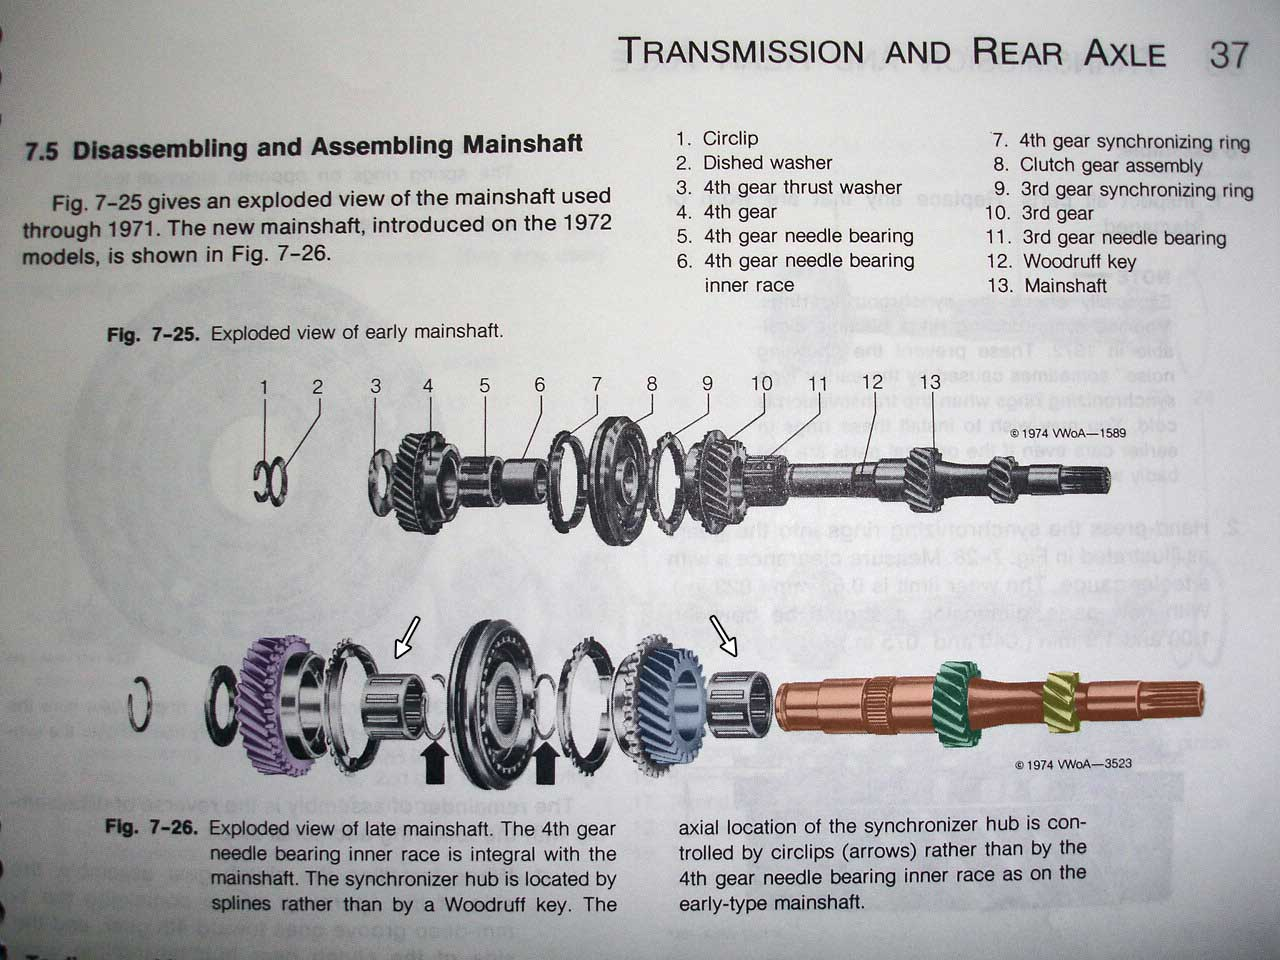 Vw Bug Transmission Diagram Change Your Idea With Wiring Type 1 Engine Transaxle Rh Ratwell Com Beetle Rebuilt Transmissions